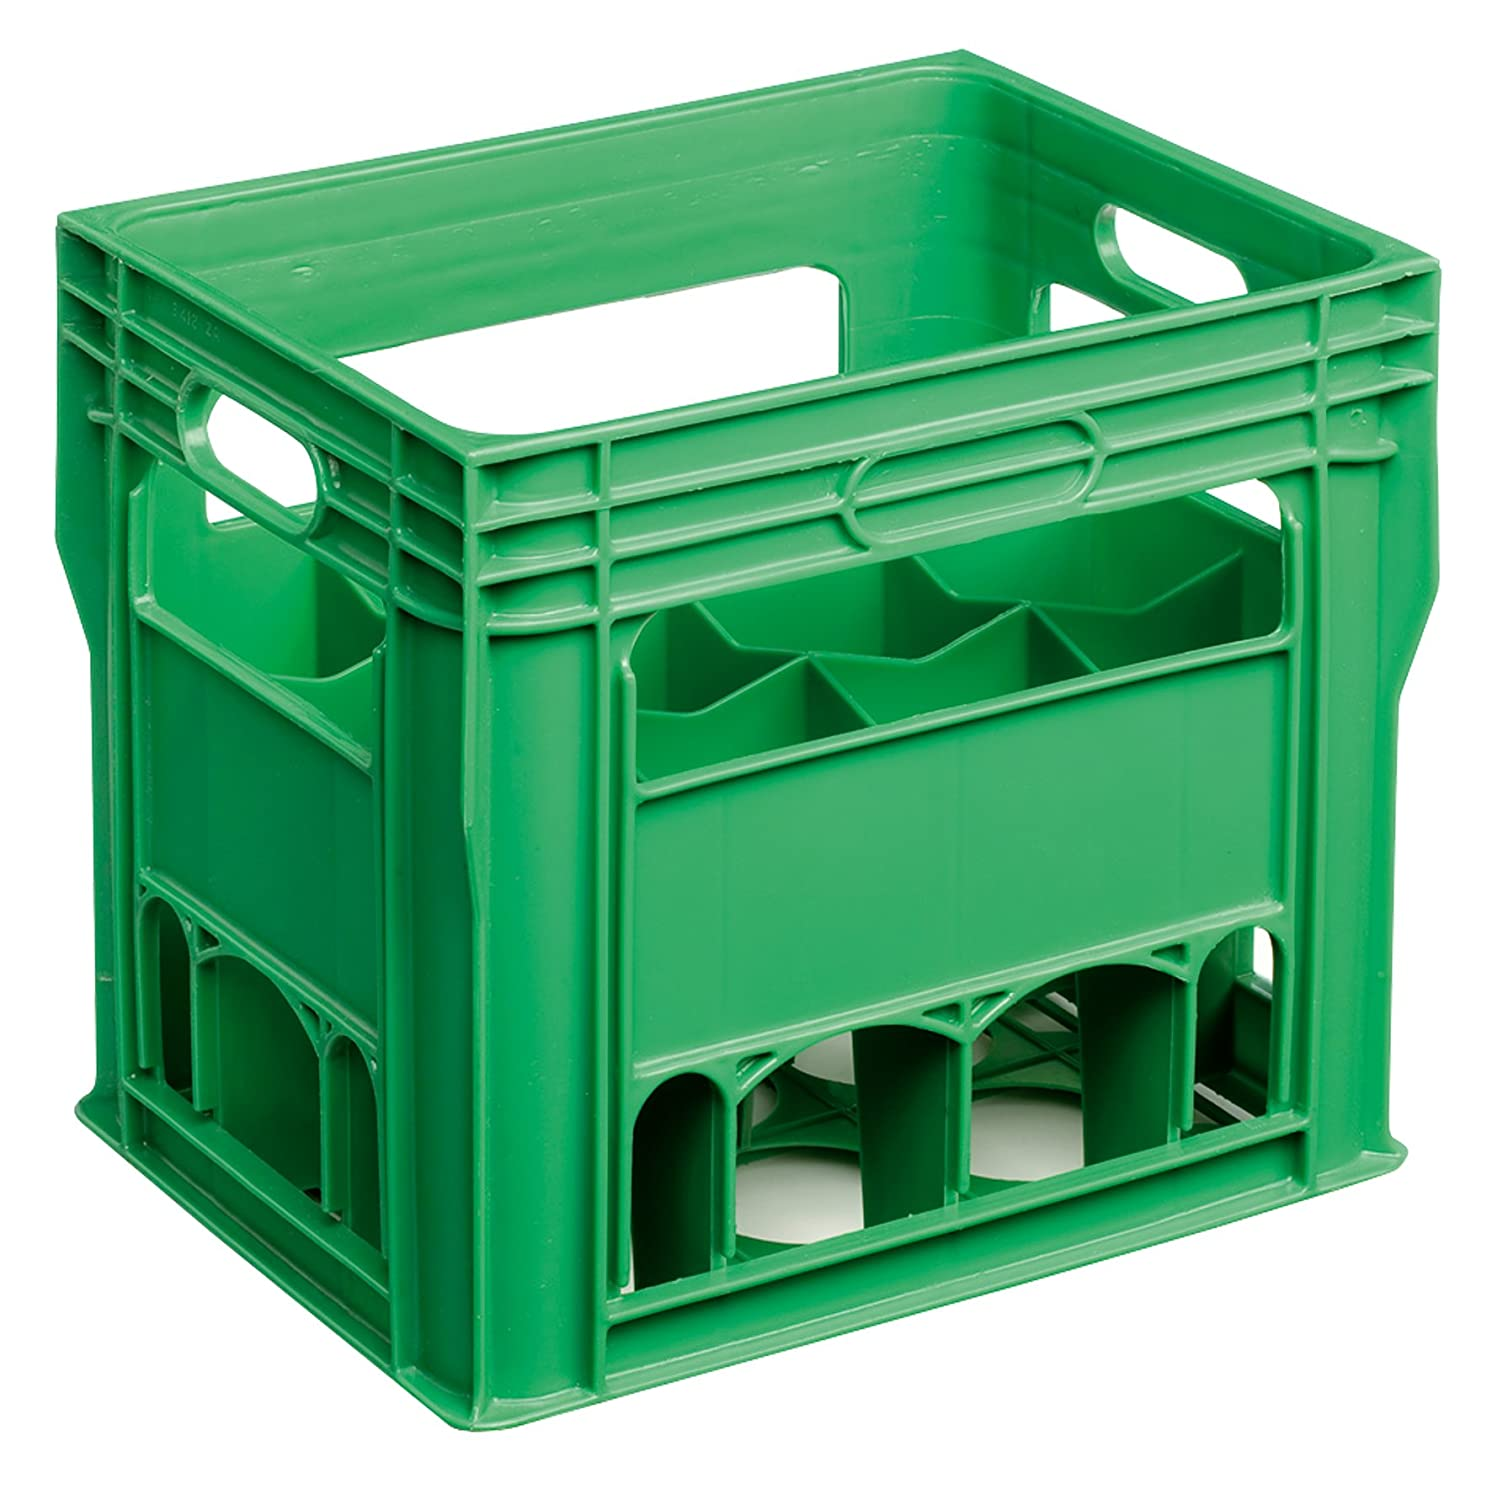 12 Compartment 750ml Wine Bottle Plastic Stacking Bottle Crate – Perfect for Wine, Glasses, Beer, Recycling Box, Bottle Bank, Bottle Storage, Homebrew, Catering, Milk (1)